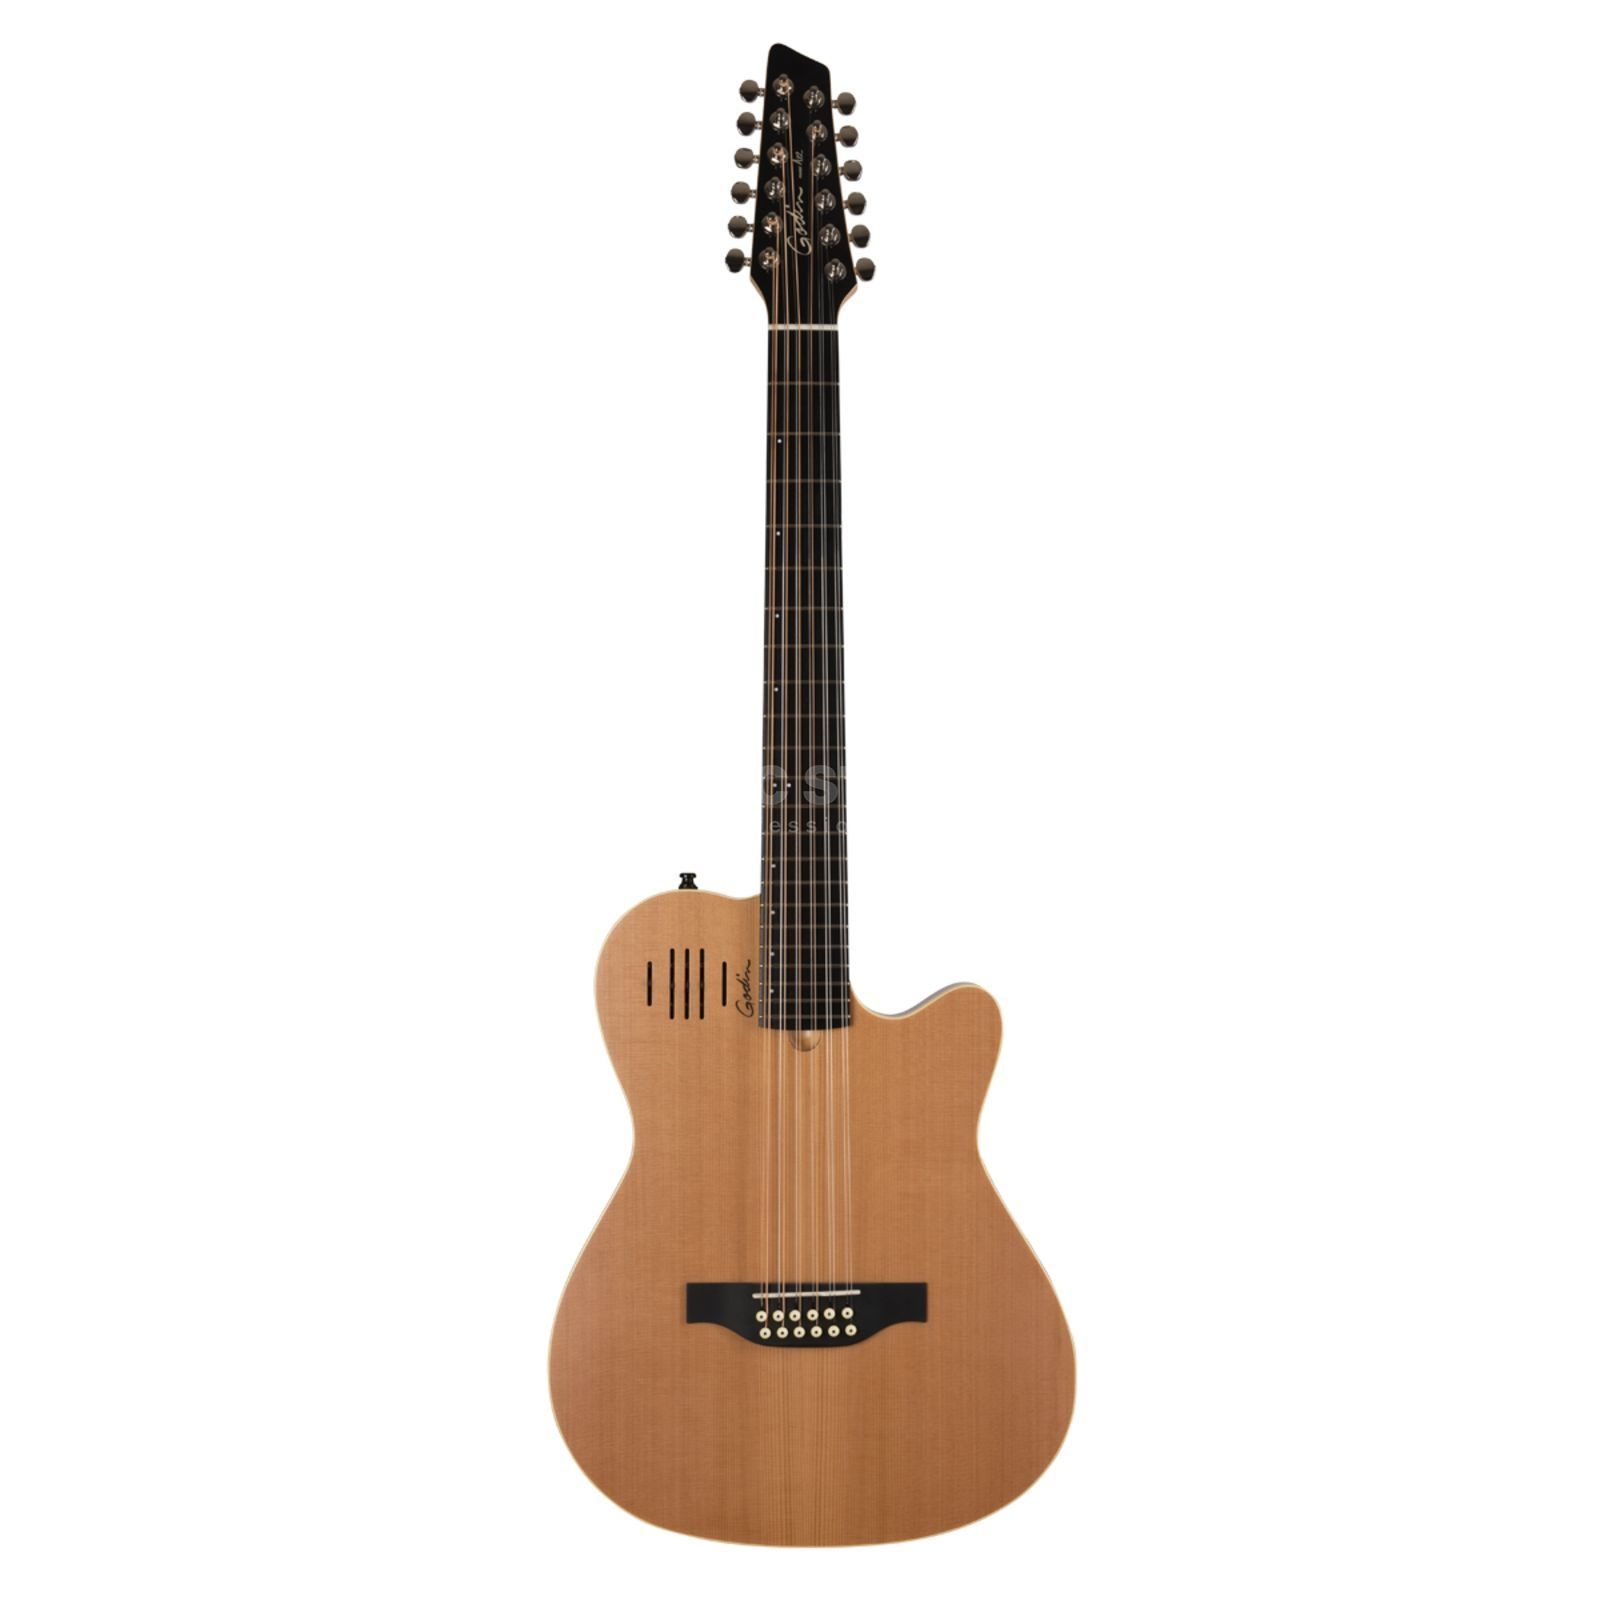 Godin A 12 12-Str.Natural Semi Gloss solid Cedar Top,  incl. Bag Produktbillede